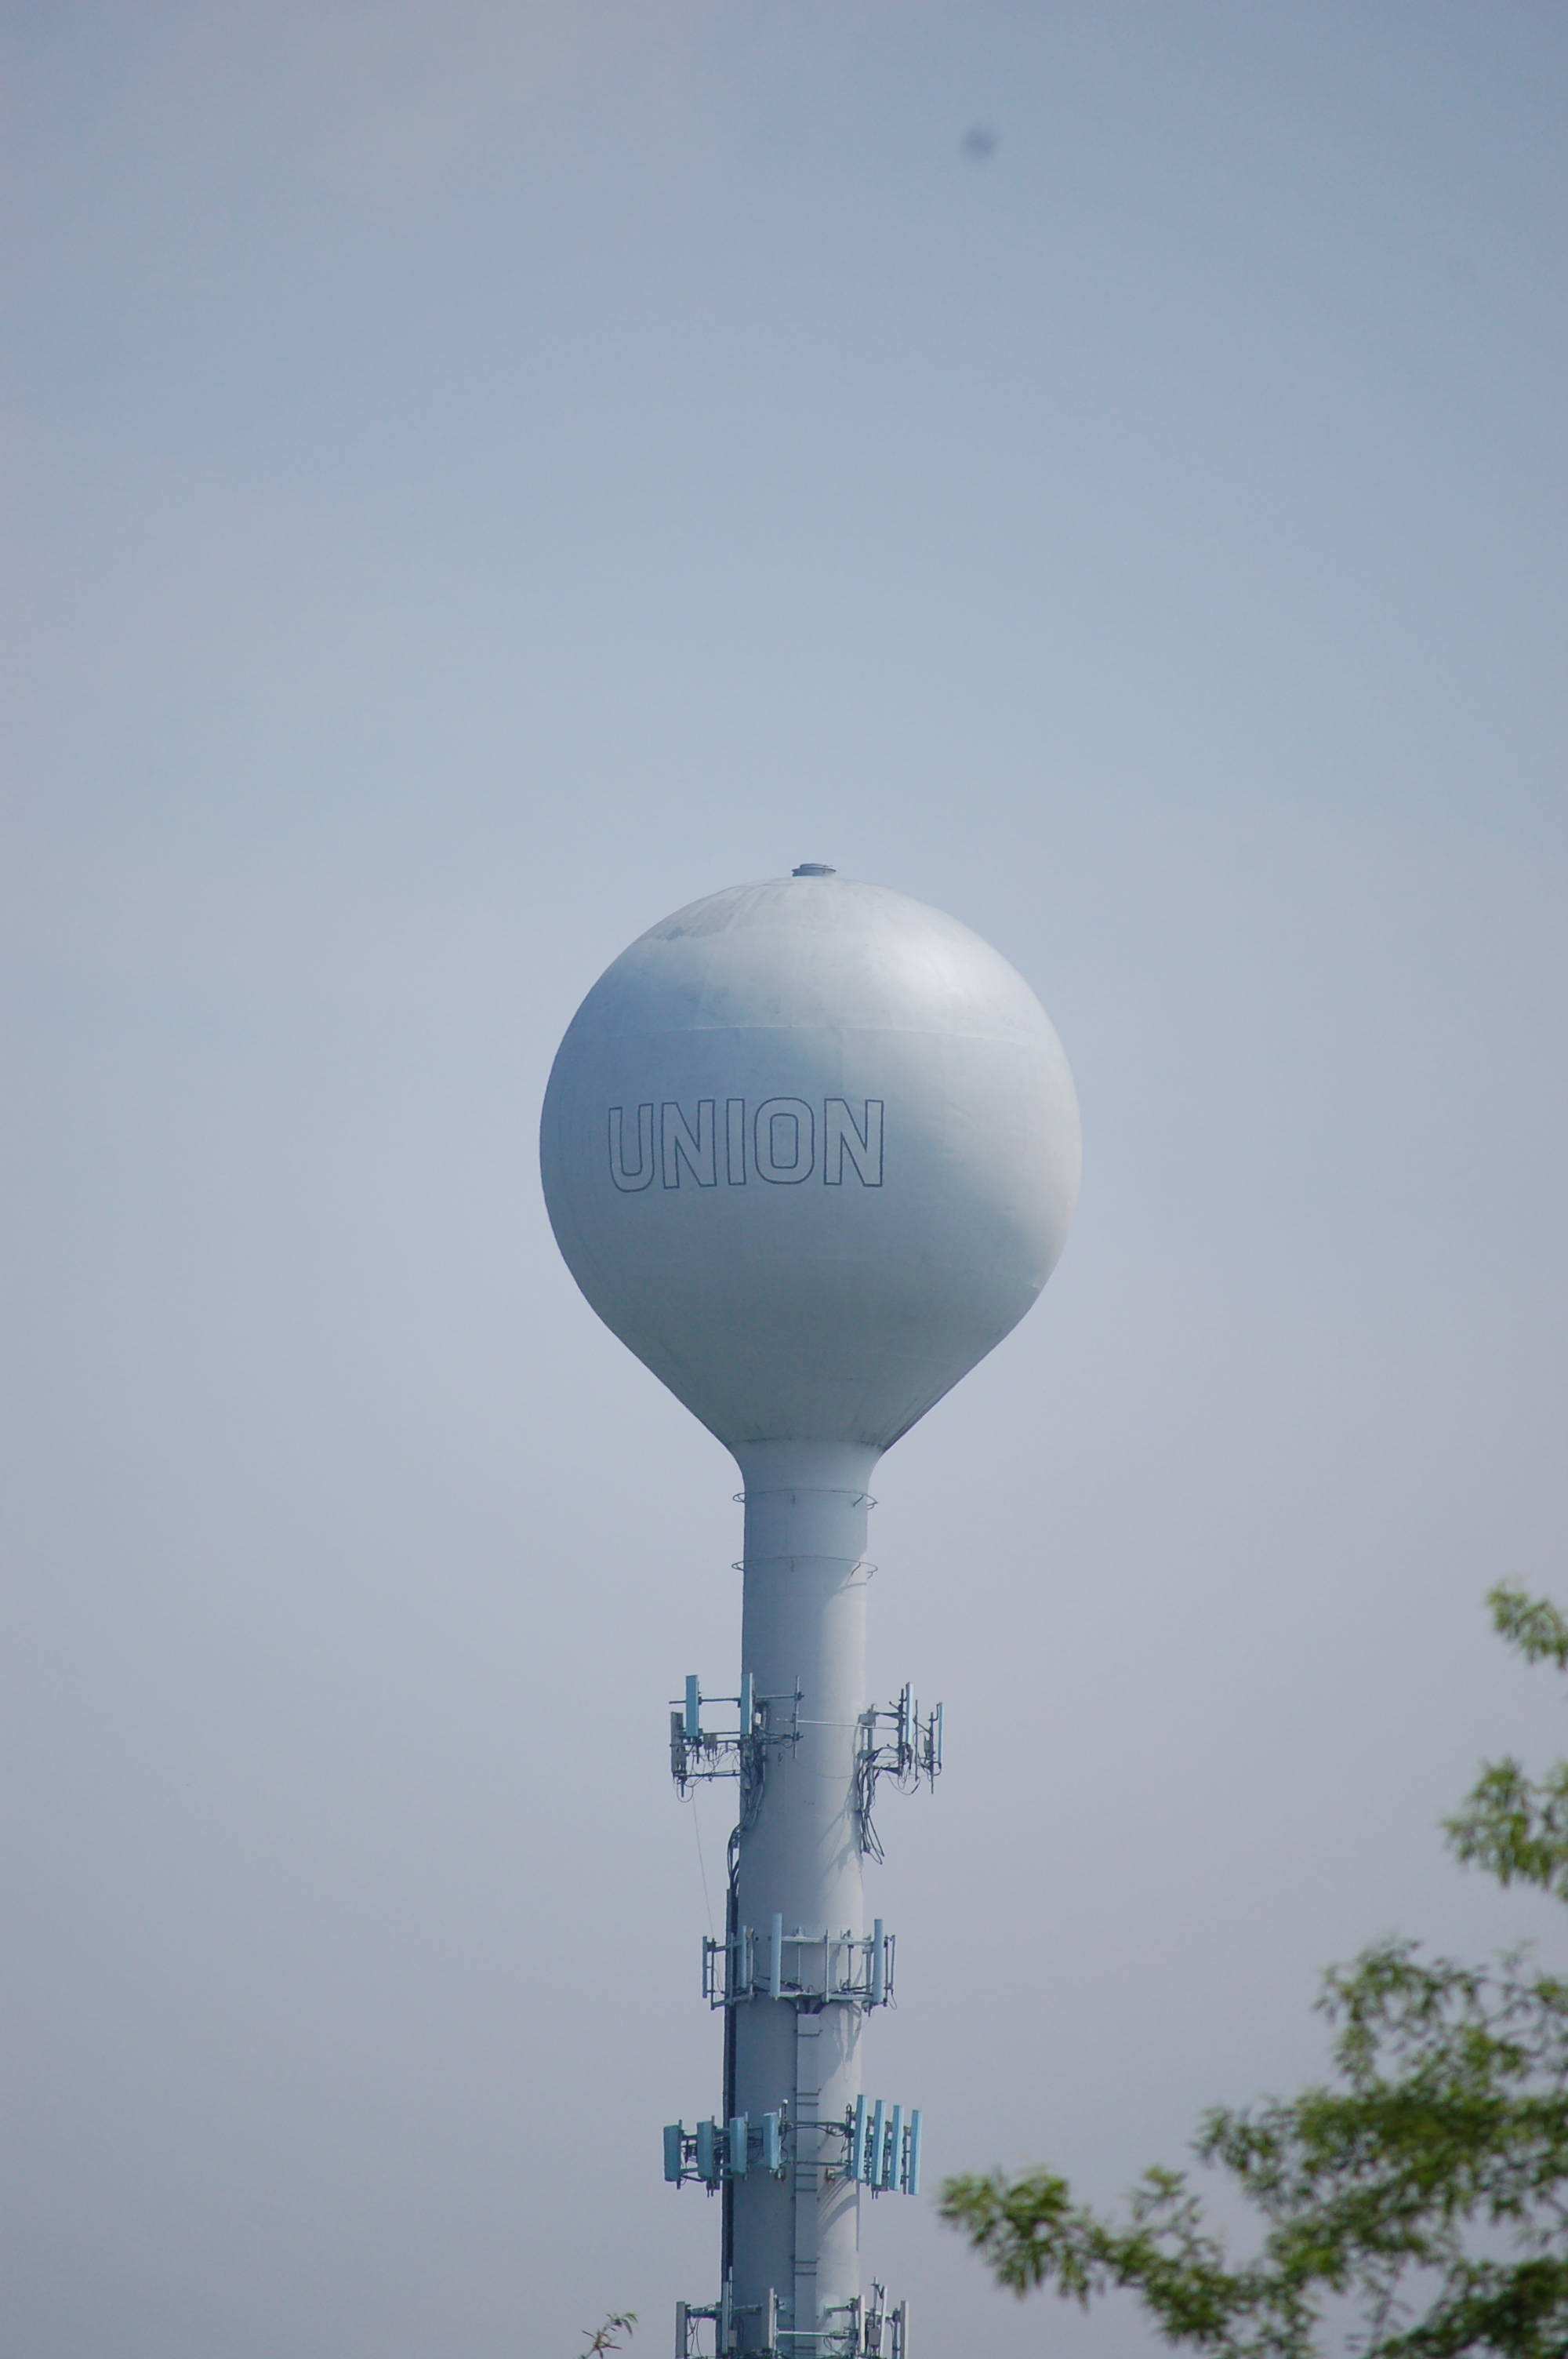 16ba6e0fe63245c0550d_a55a20b8ce44c6be034c_union_water_tower.jpg